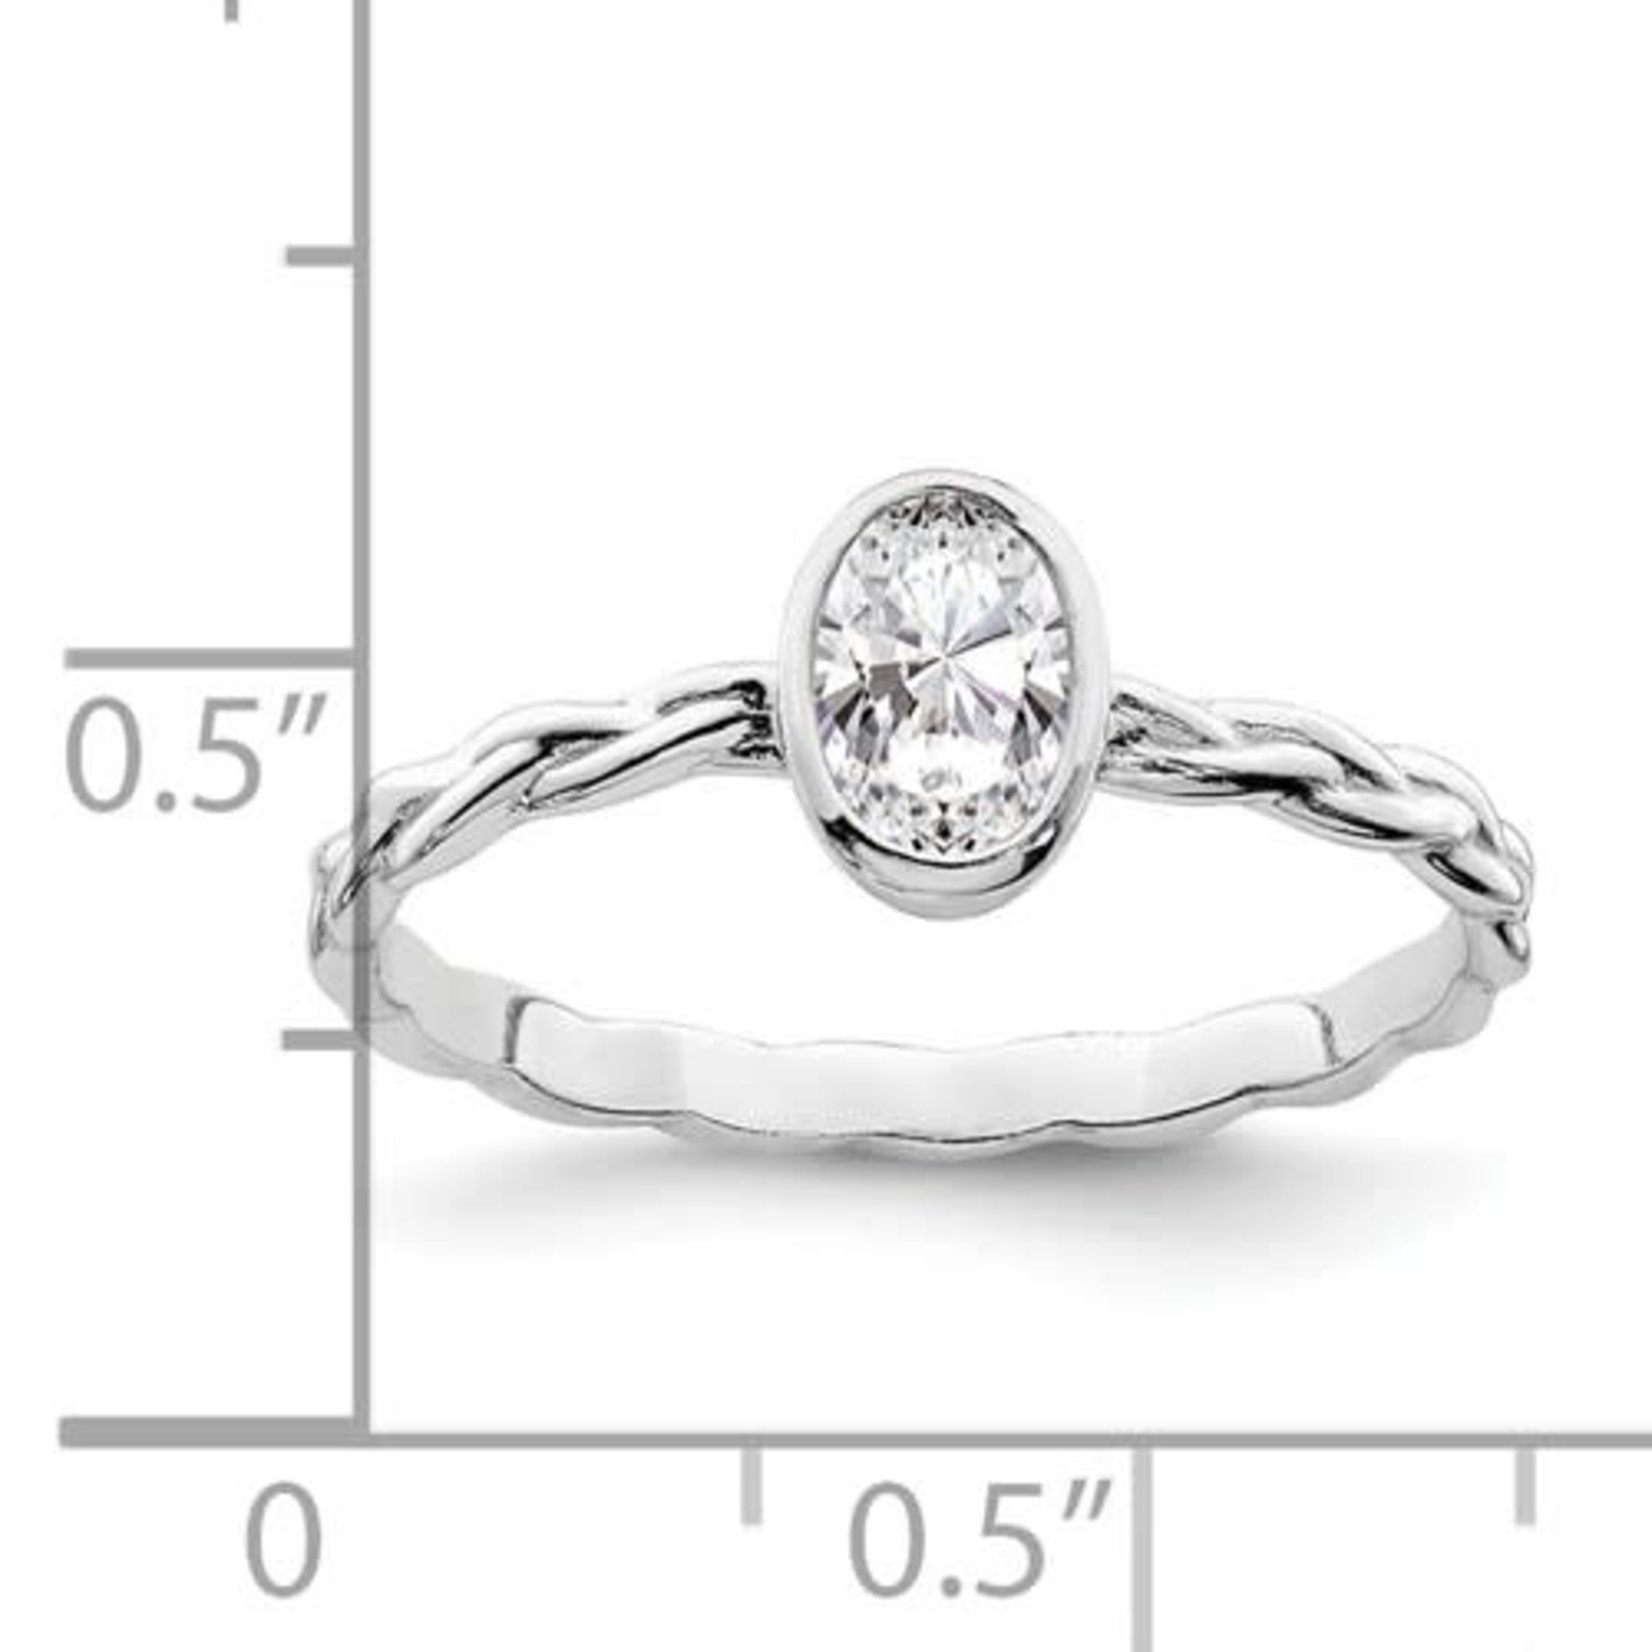 This Is Life Oval CZ With Braided Band Ring - Sterling Silver